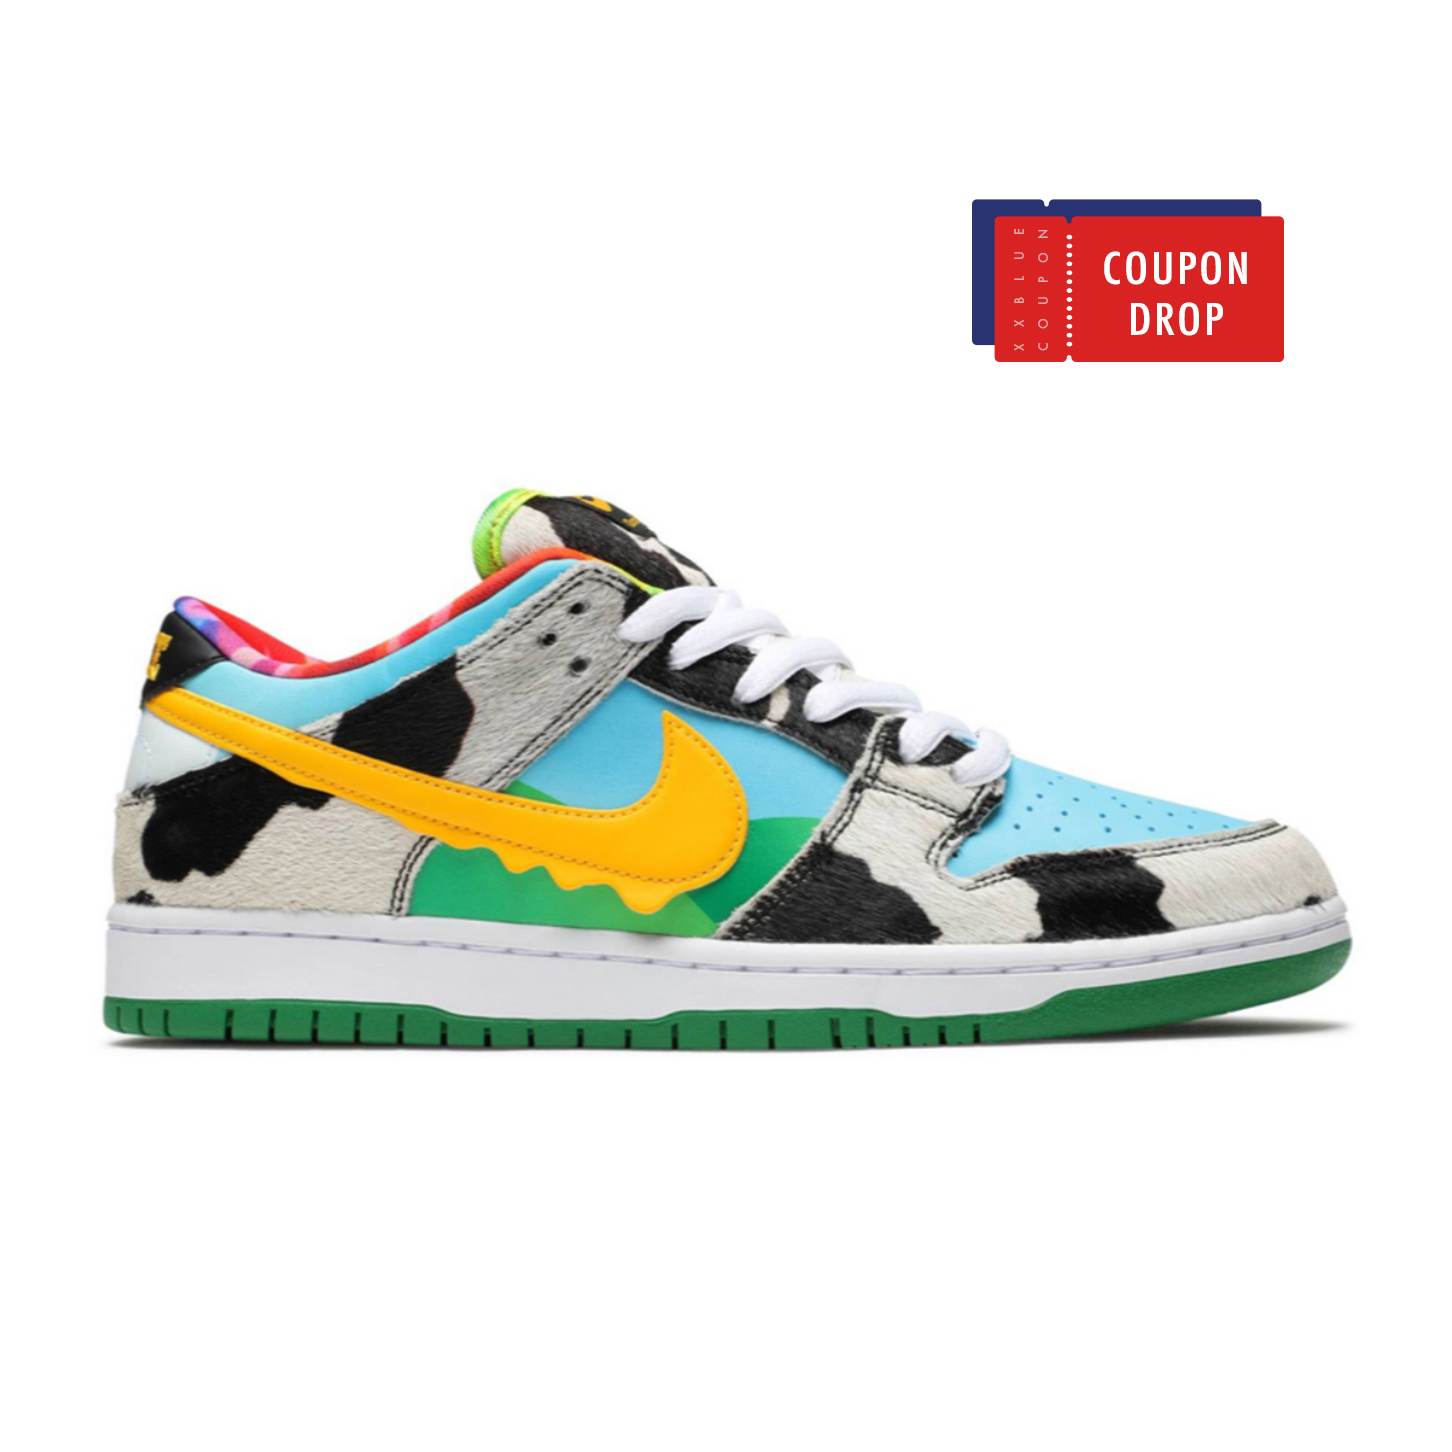 SB Dunk Low Ben & Jerrys Chunky Dunky